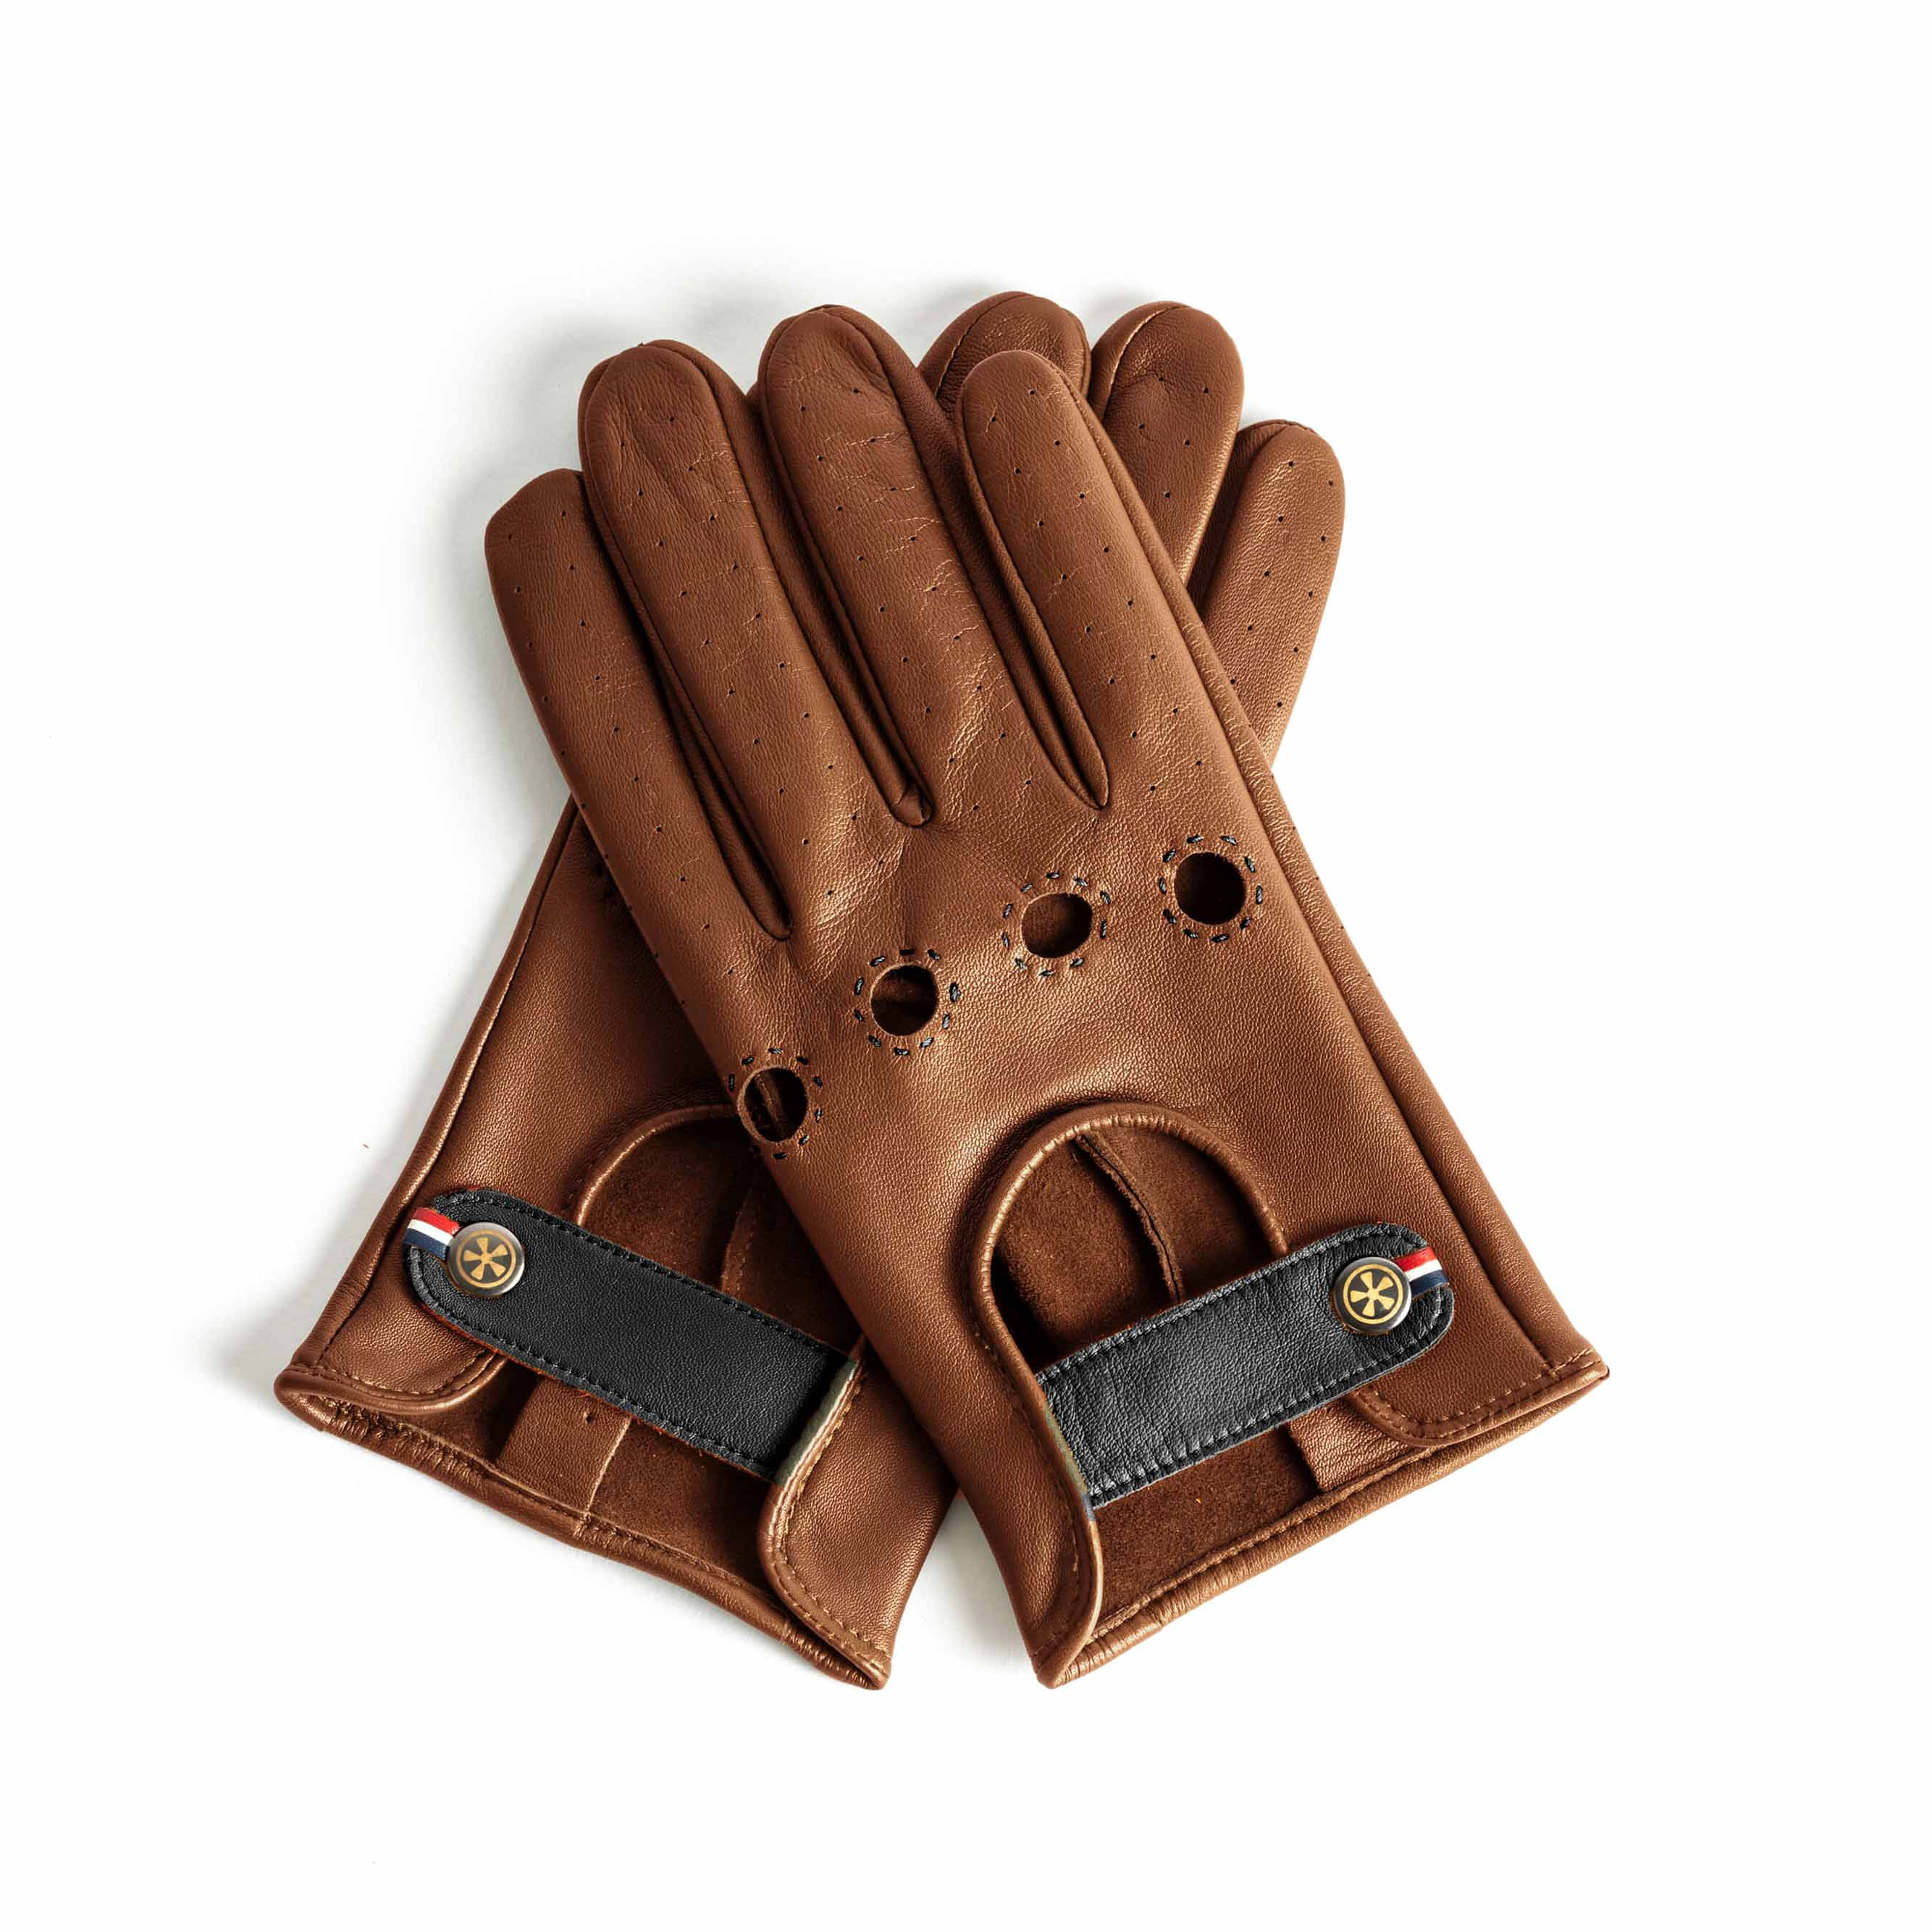 Car Drivers Gloves Car Driver Gloves Vintage Retro Lamb Leather Leather Brown